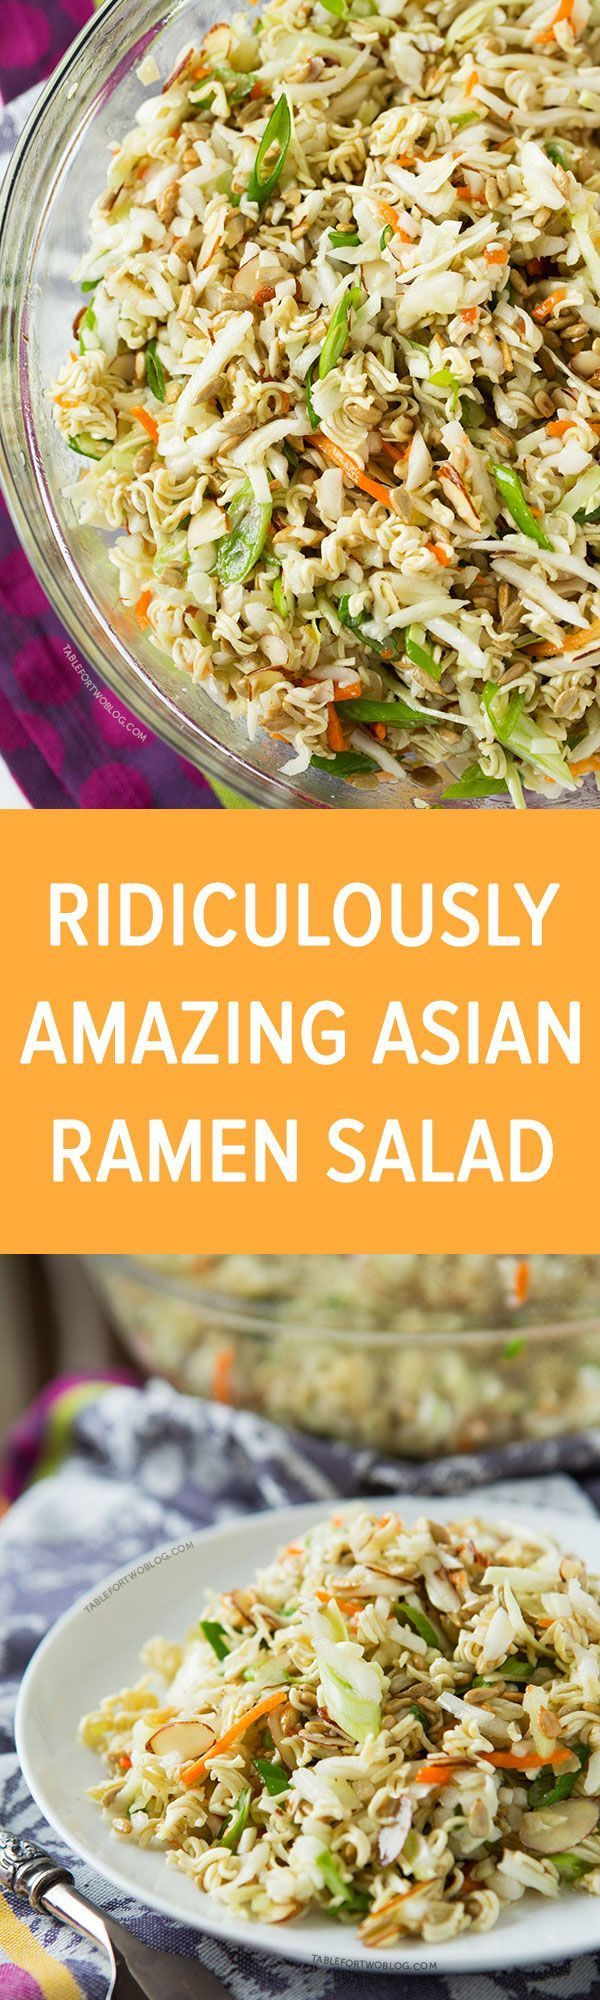 nice Ridiculously Amazing Asian Ramen Salad - Table for Two